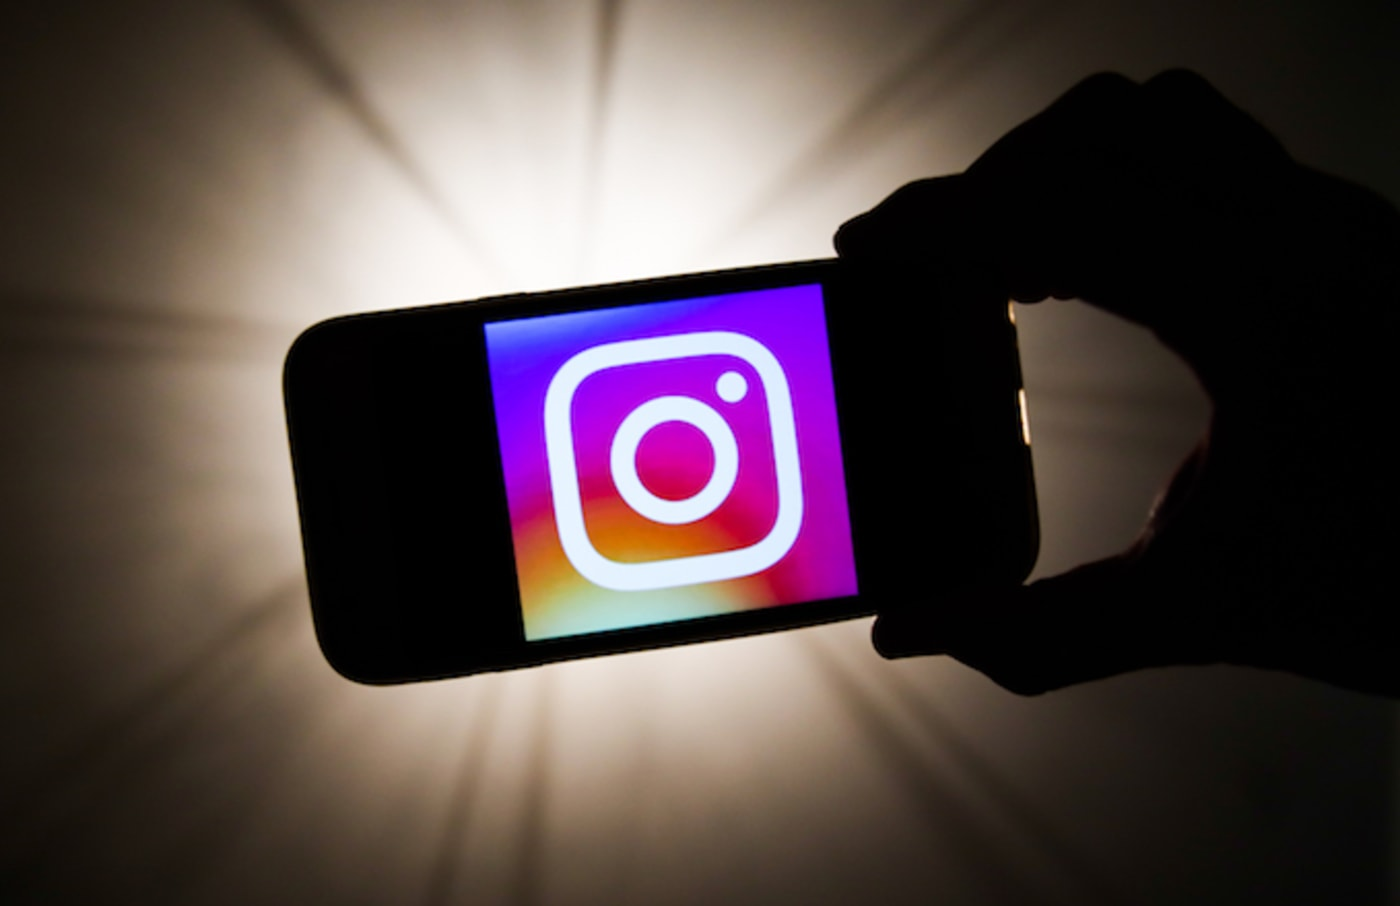 Instagram logo is seen displayed on a phone screen.